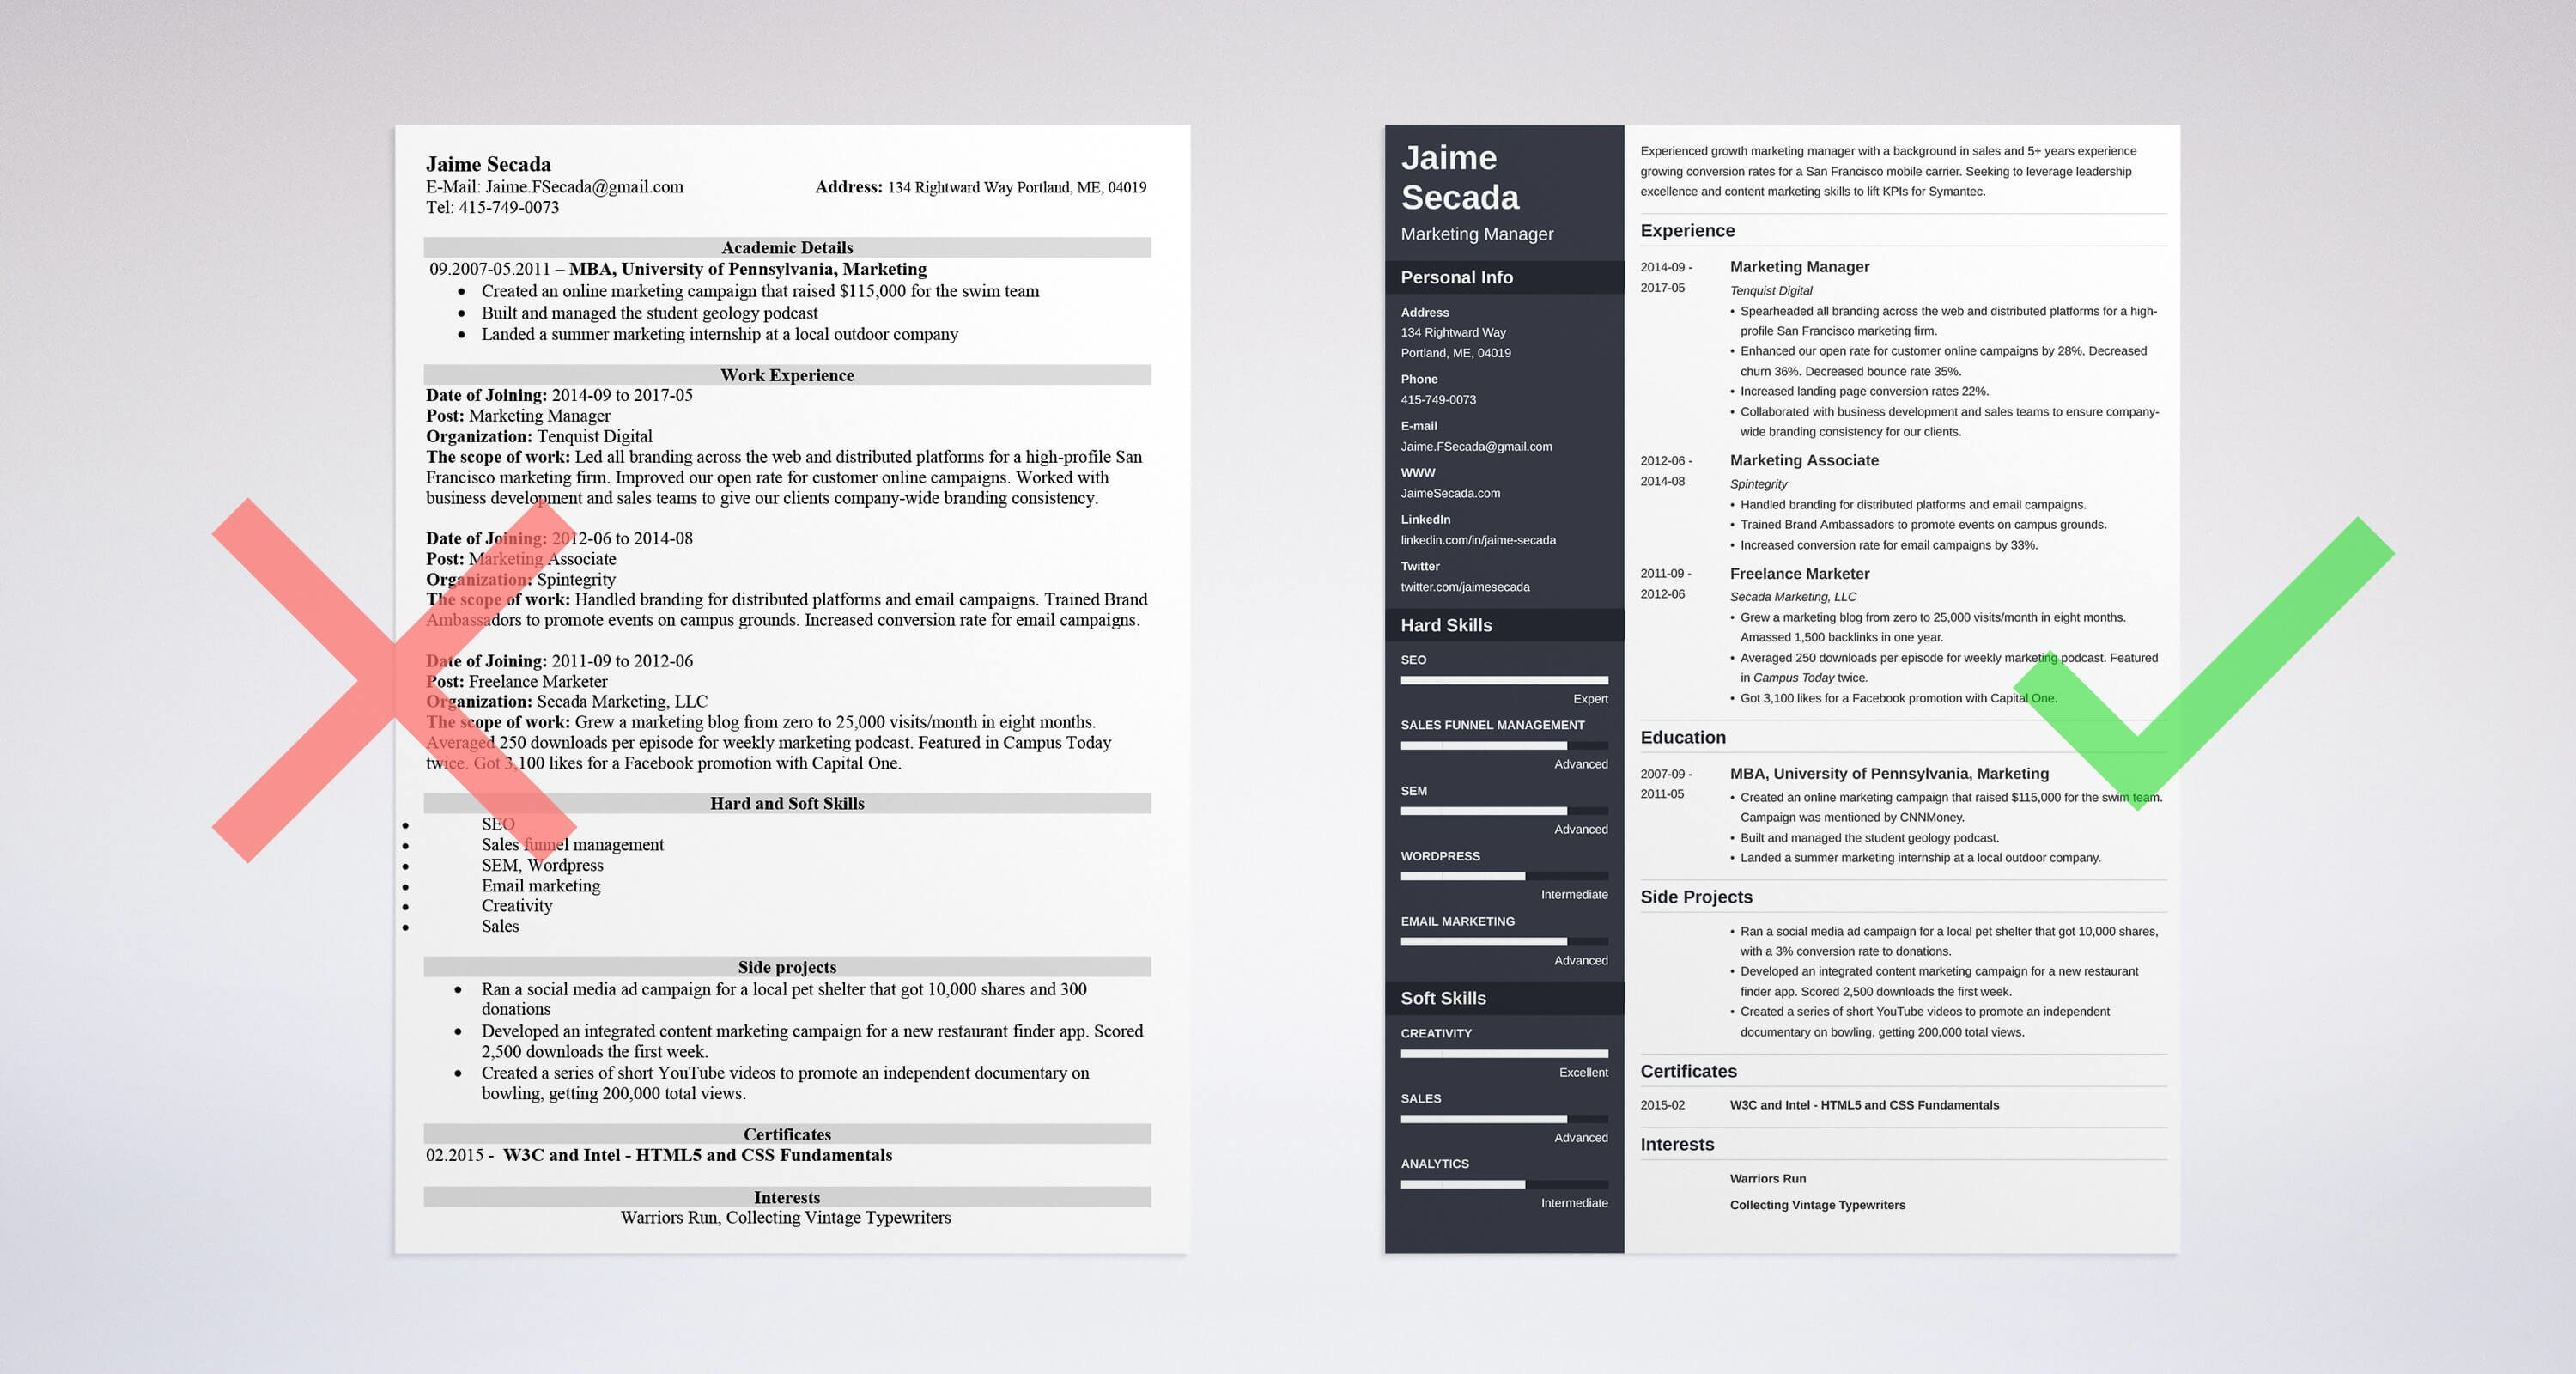 20 Effective Communication Skills Good For A Resume